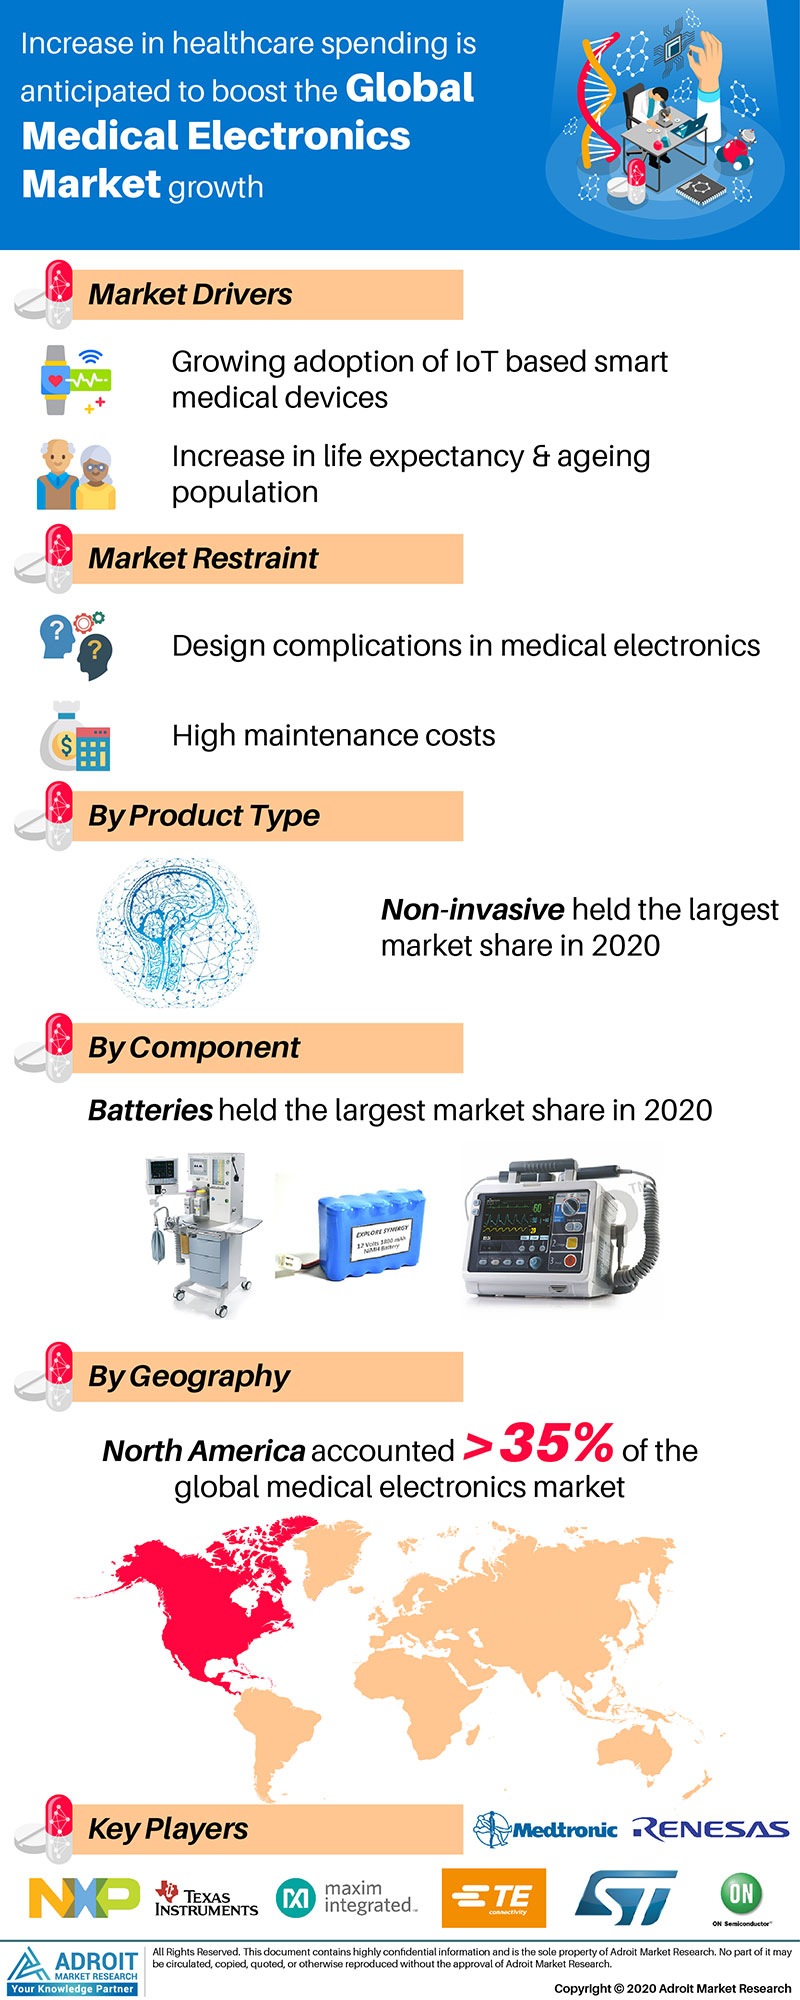 Global Medical Electronics Market Size 2017 By Type, Device, Region and Forecast 2018 to 2025